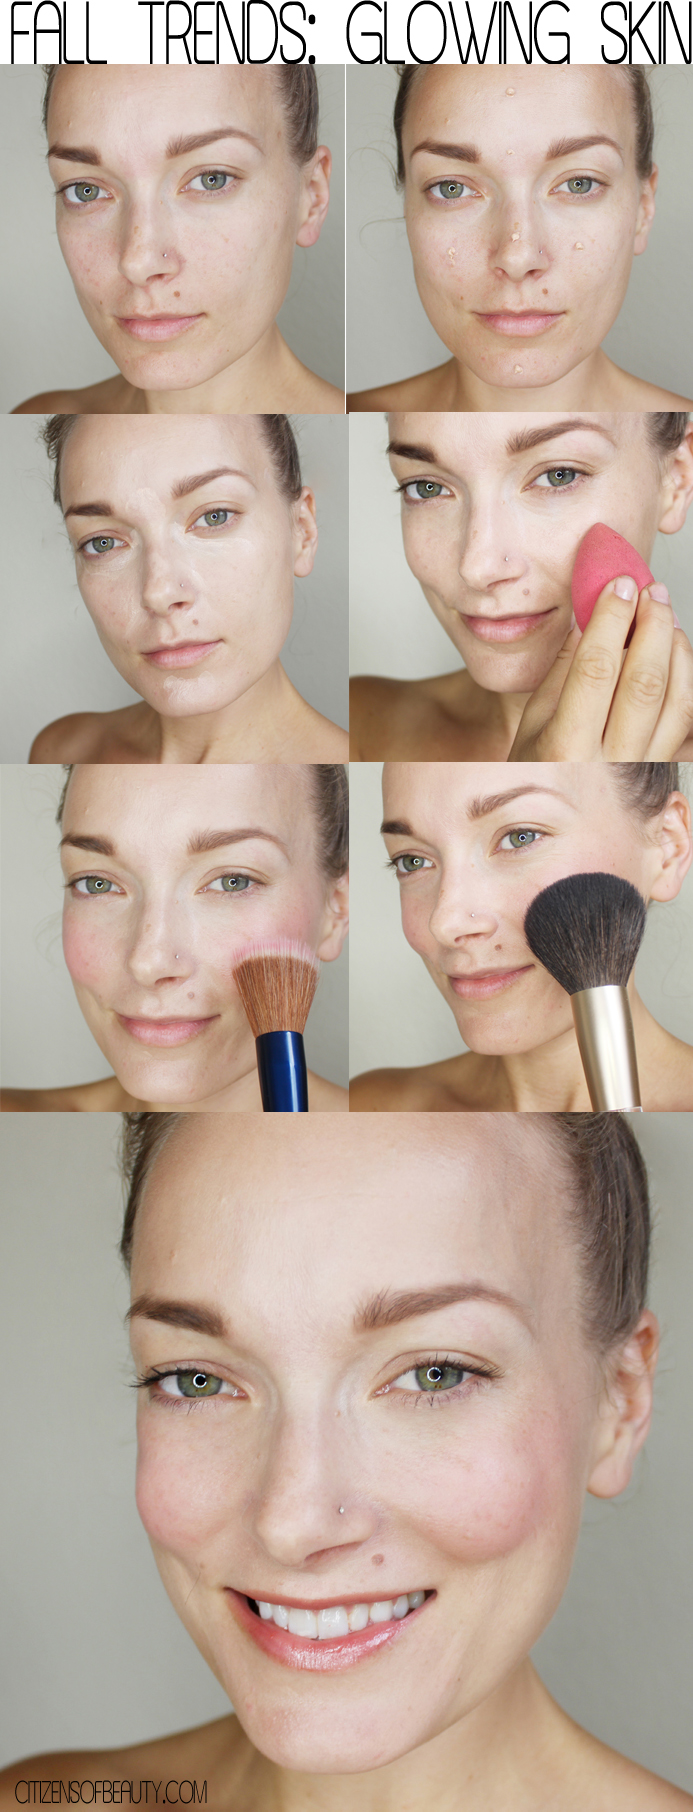 glowing skin makeup trend for fall 2014